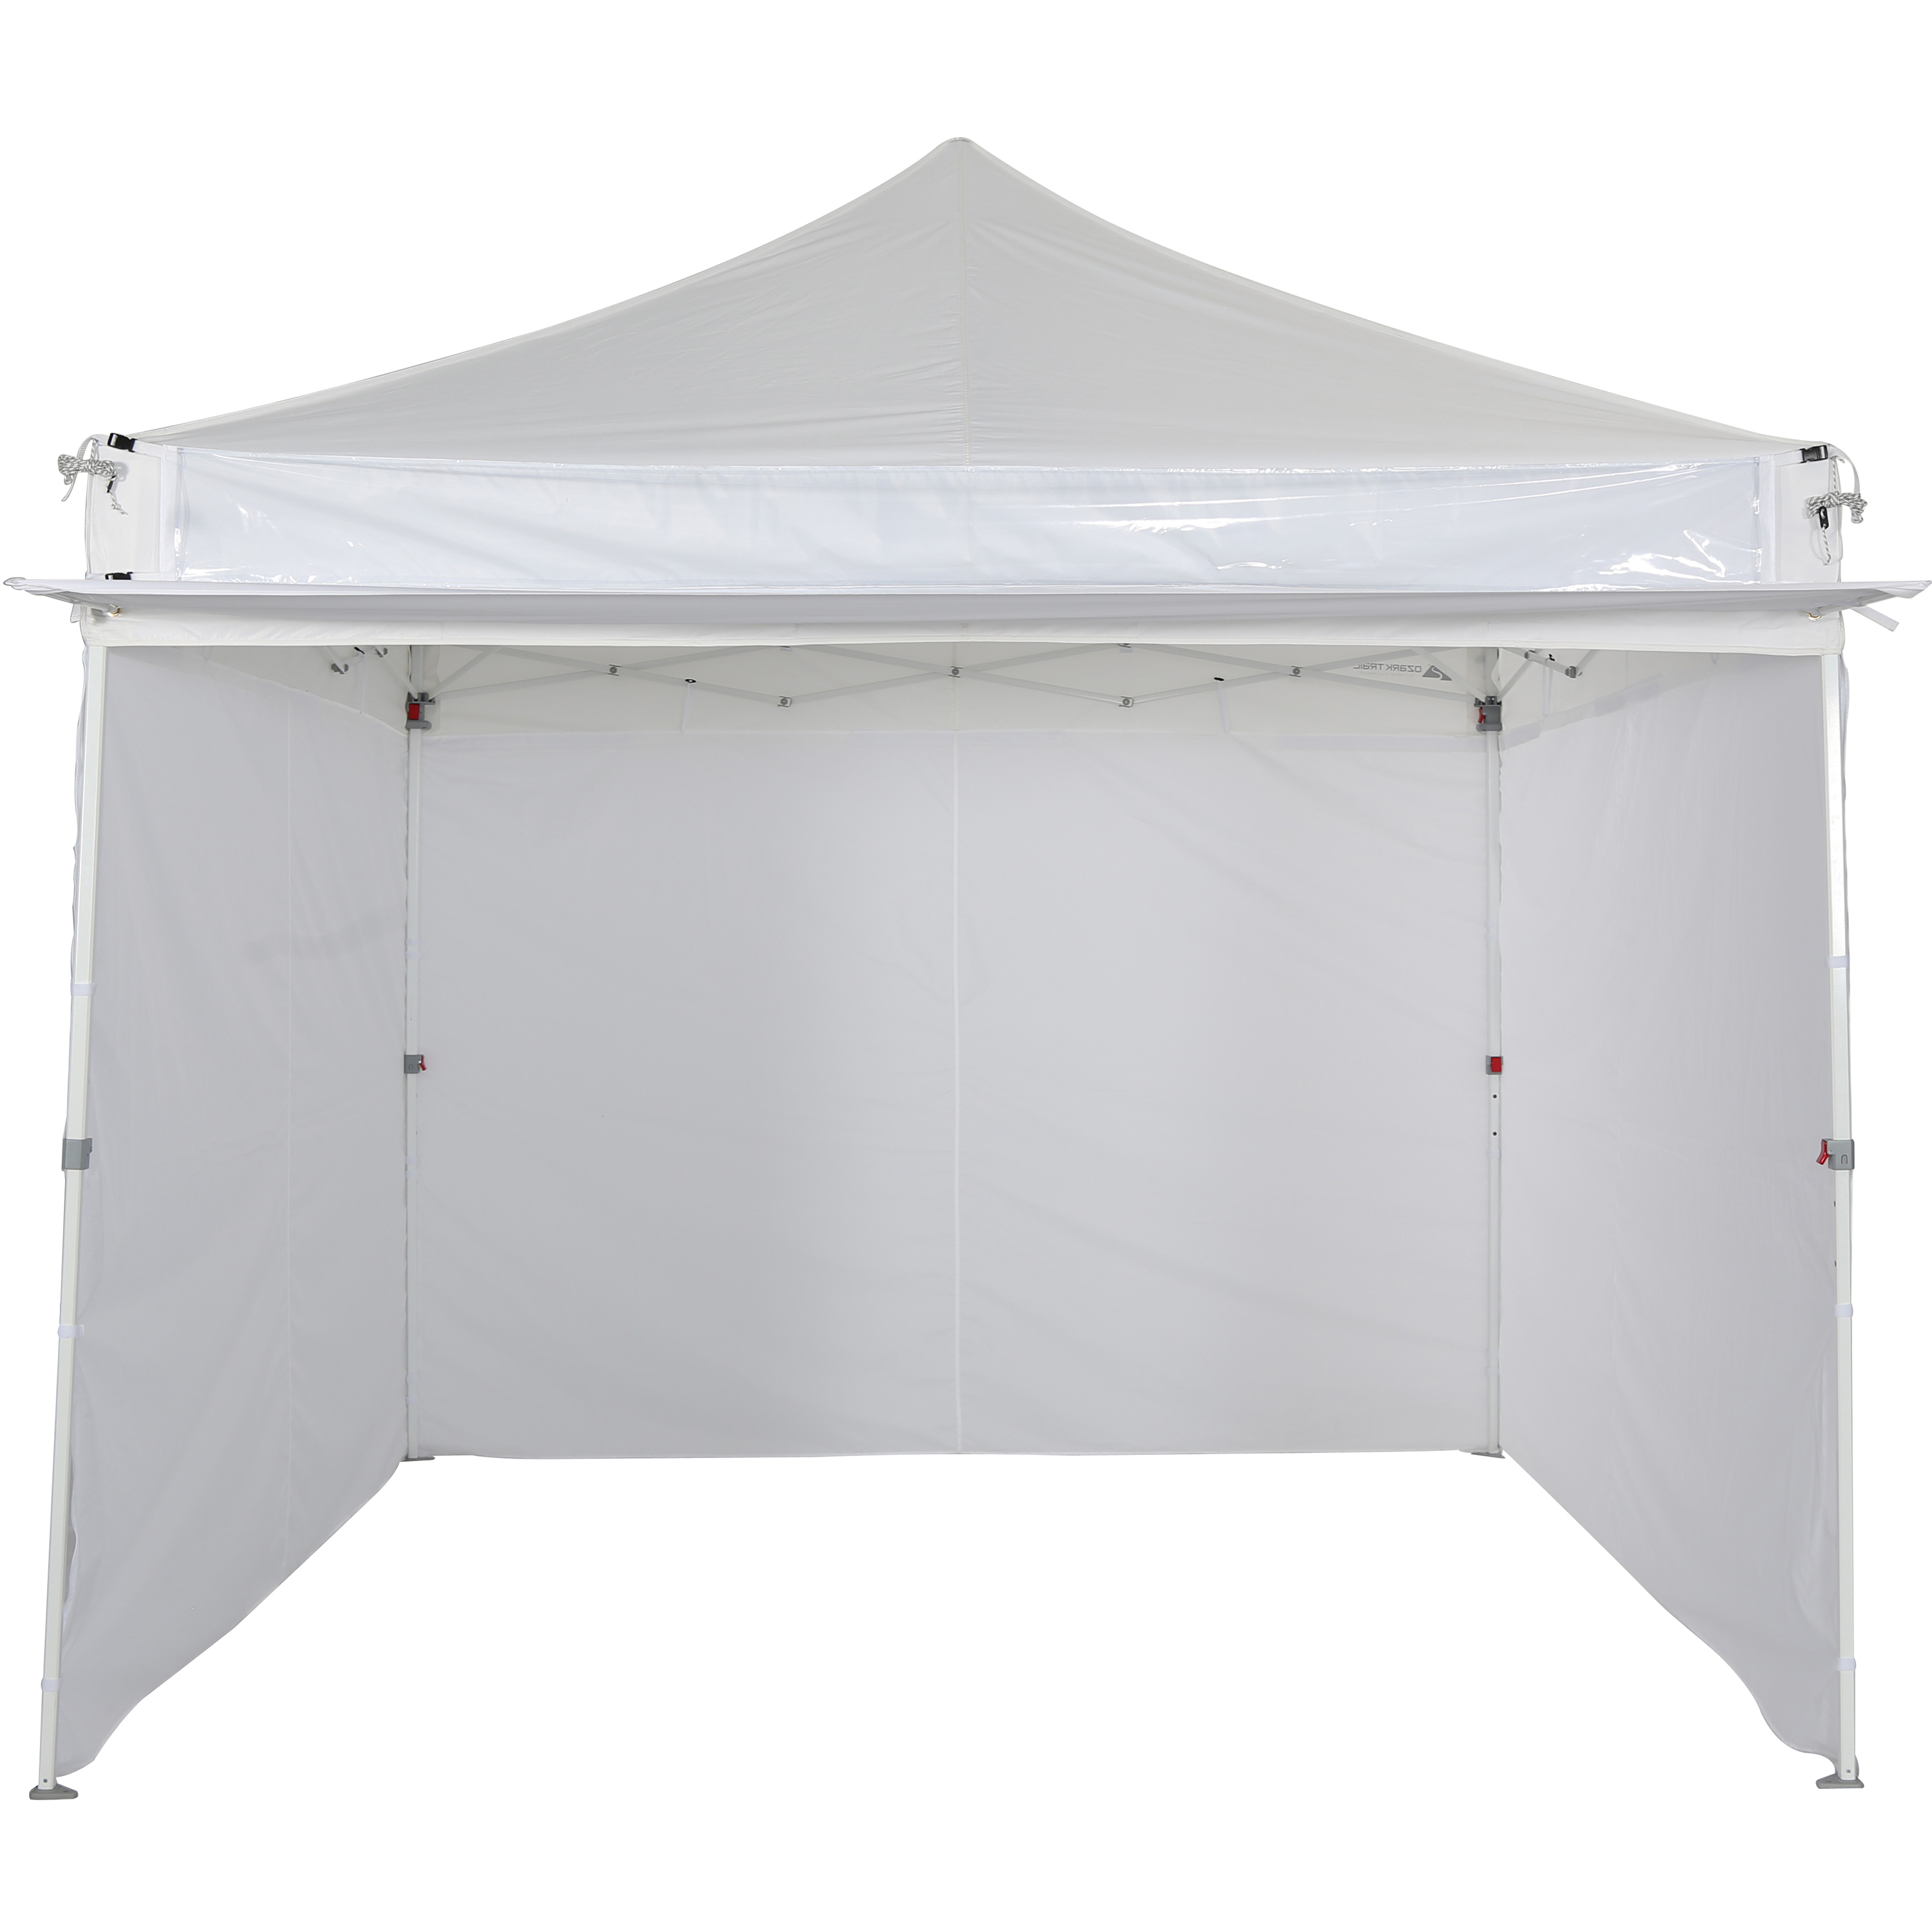 Ozark Trail 10' x 10' Commercial Canopy with 4 Side Walls